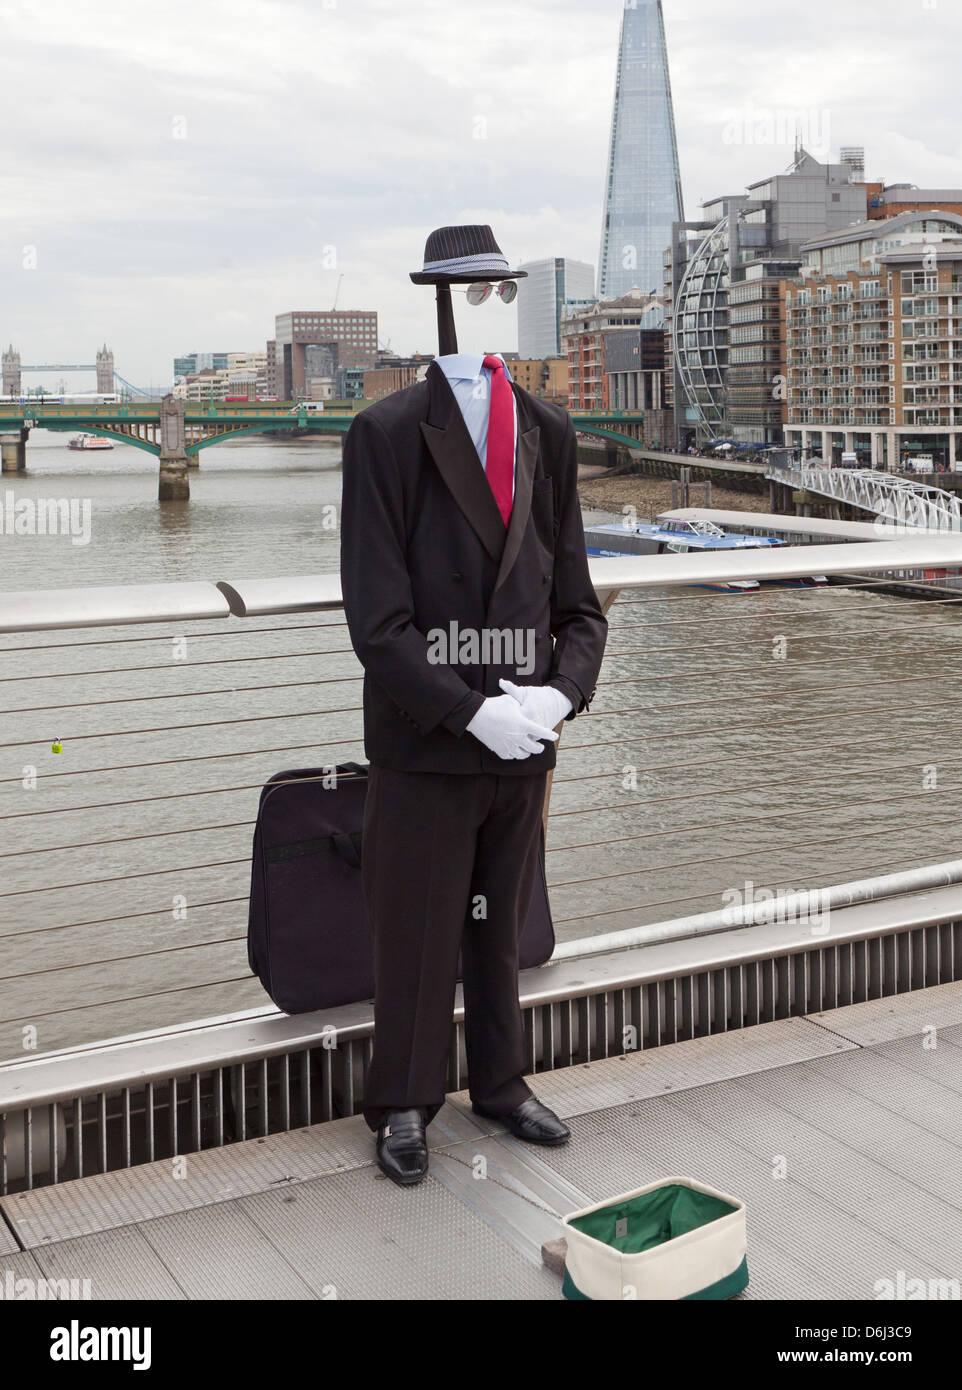 The Invisible Man Human Statue South Bank London UK - Stock Image